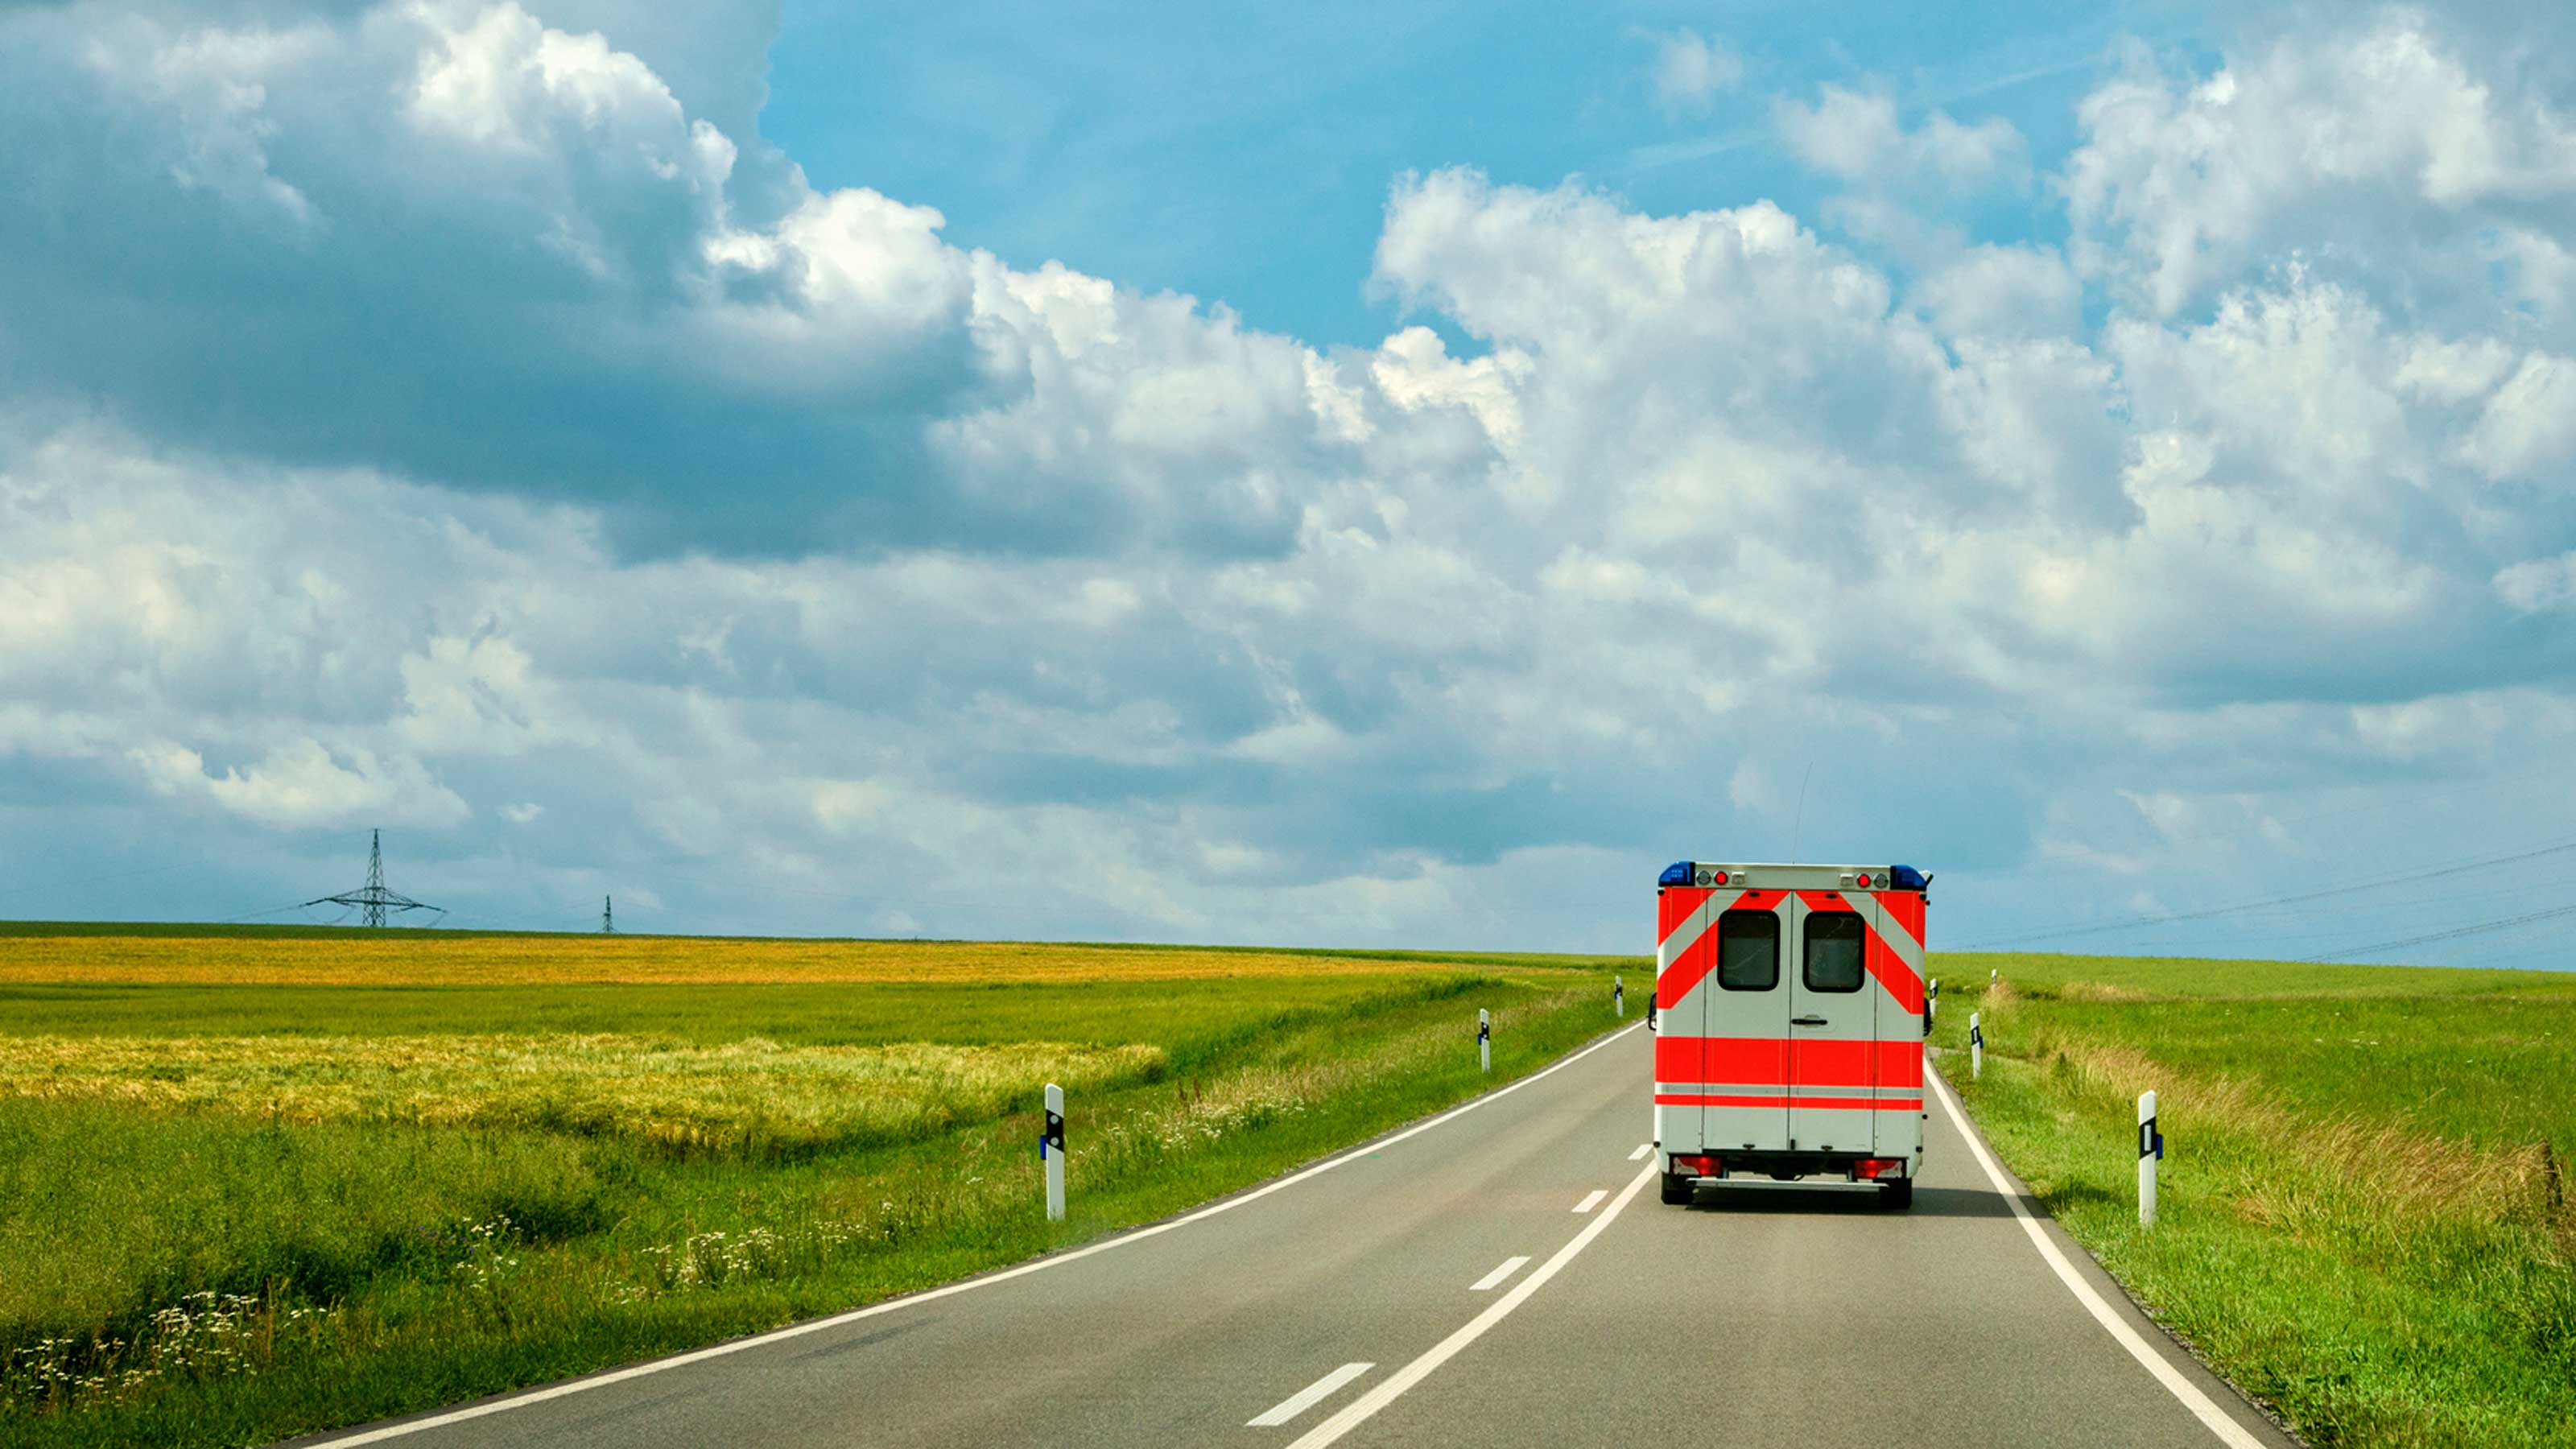 10 Things to Know Before Going to the Hospital (from a Legal Perspective) | Kiplinger